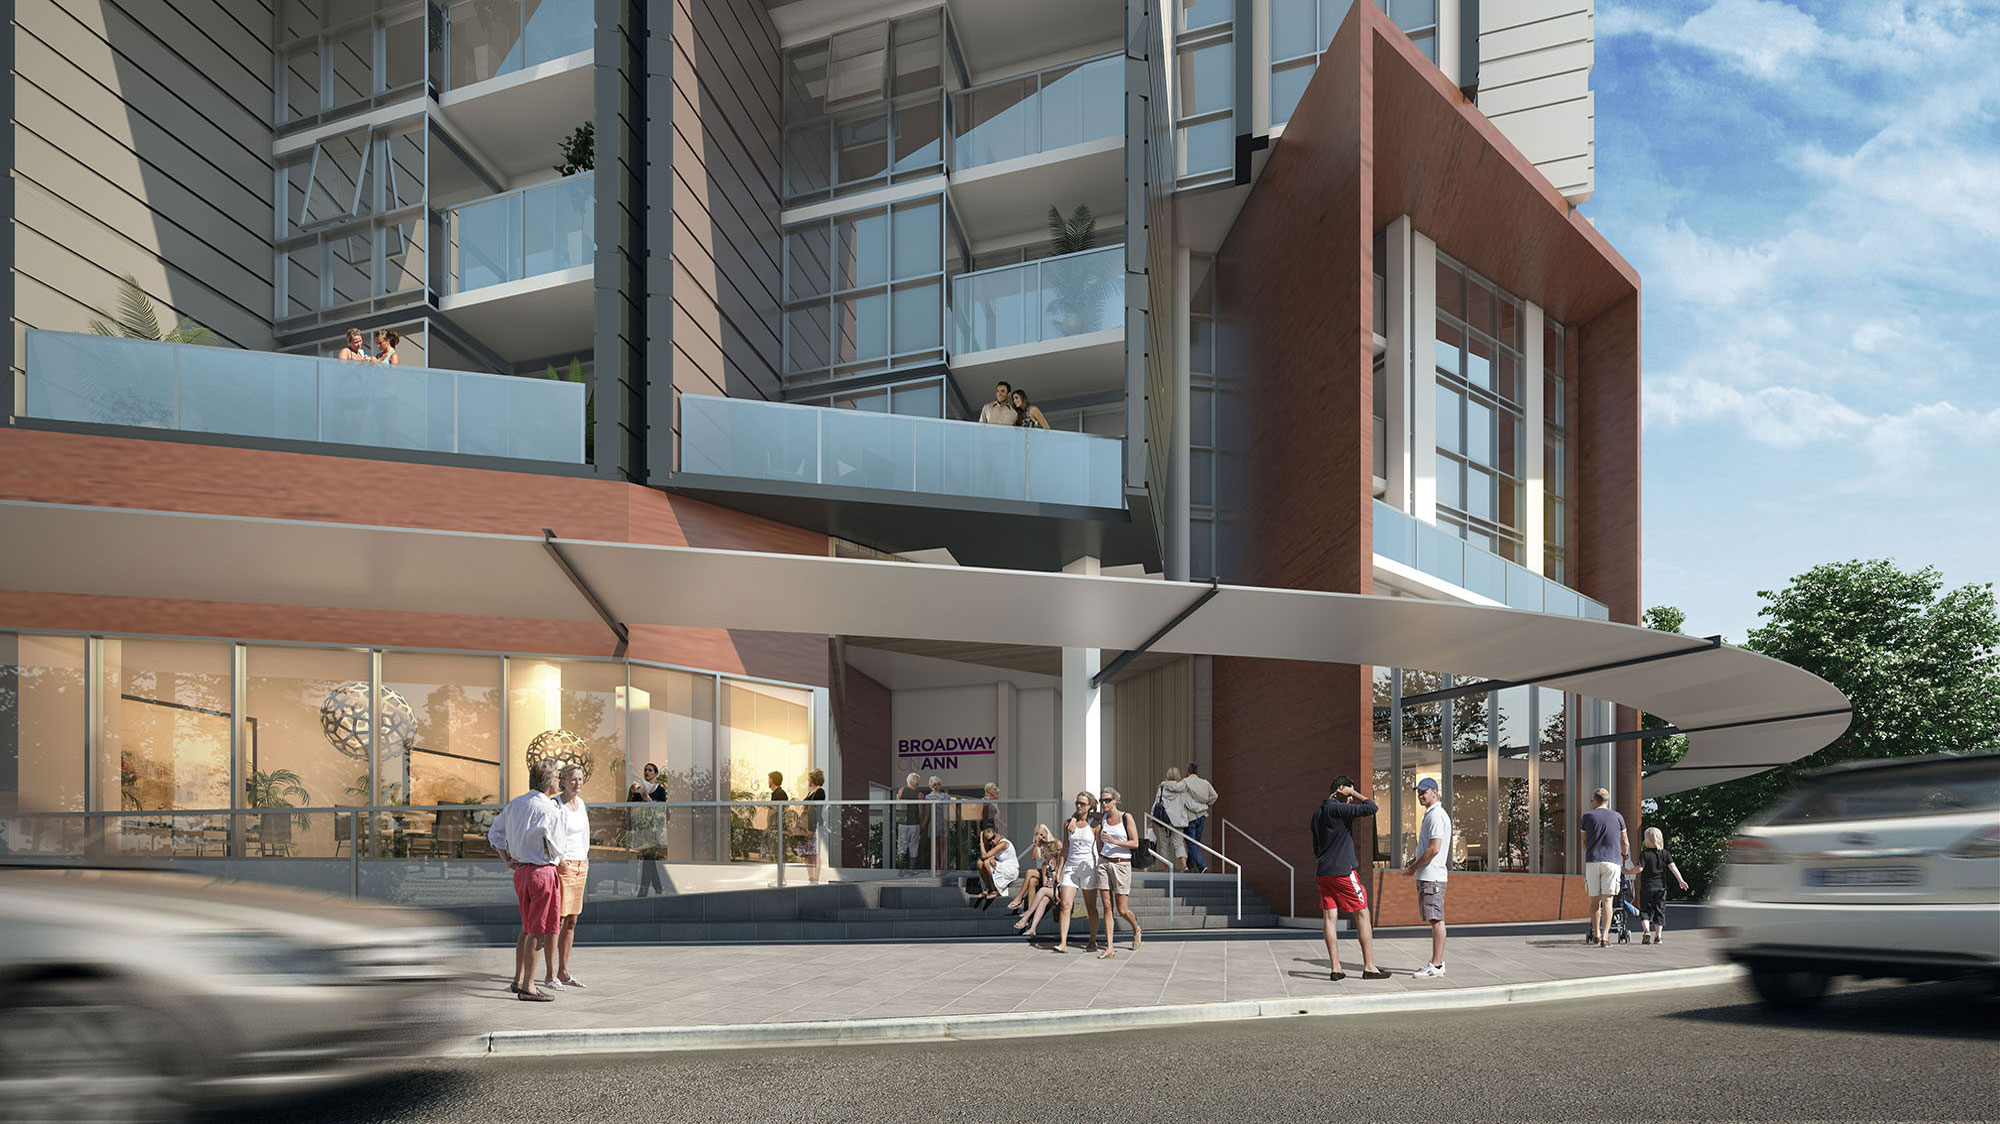 Fortitude Valley - Broadway front